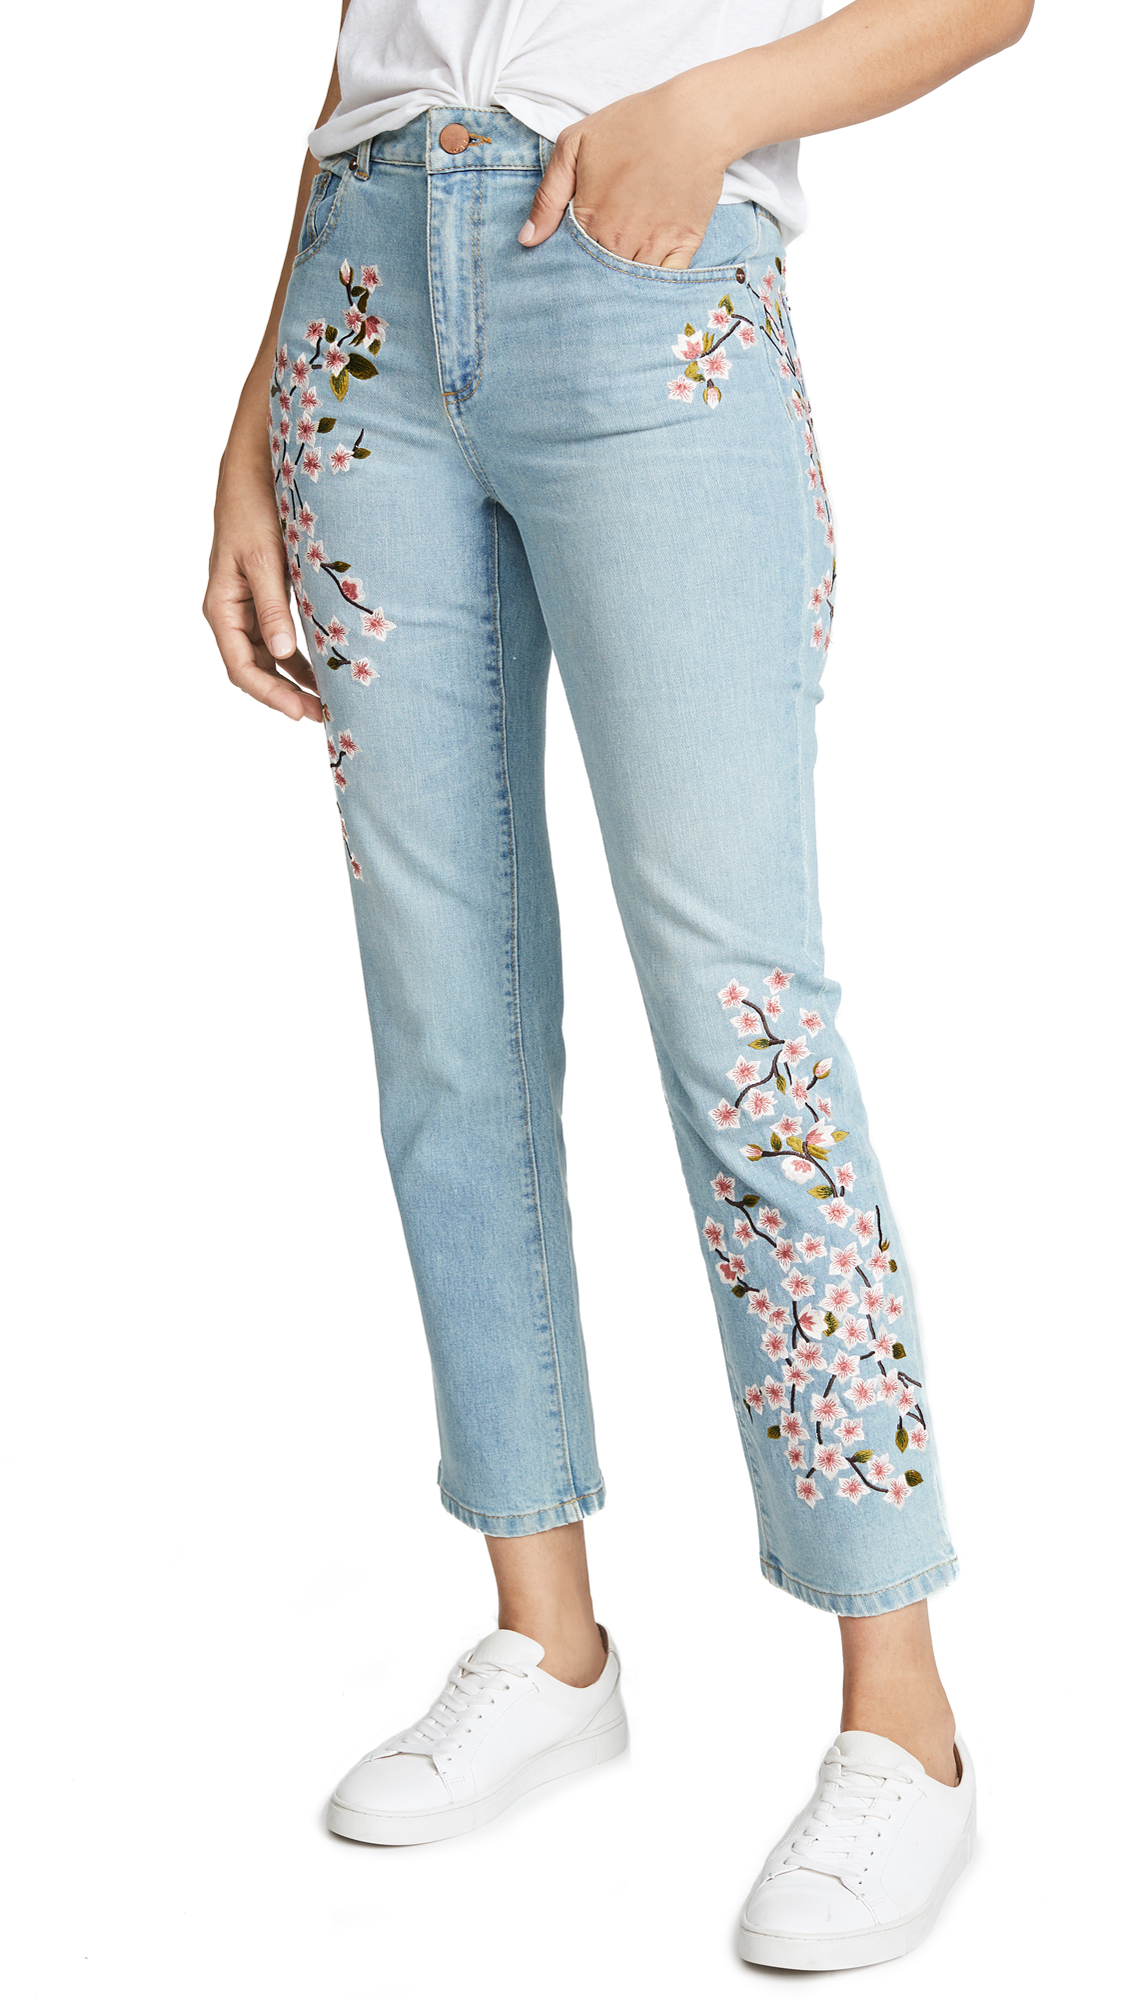 AO. LA by alice + olivia Amazing Embroidered High Rise Jeans